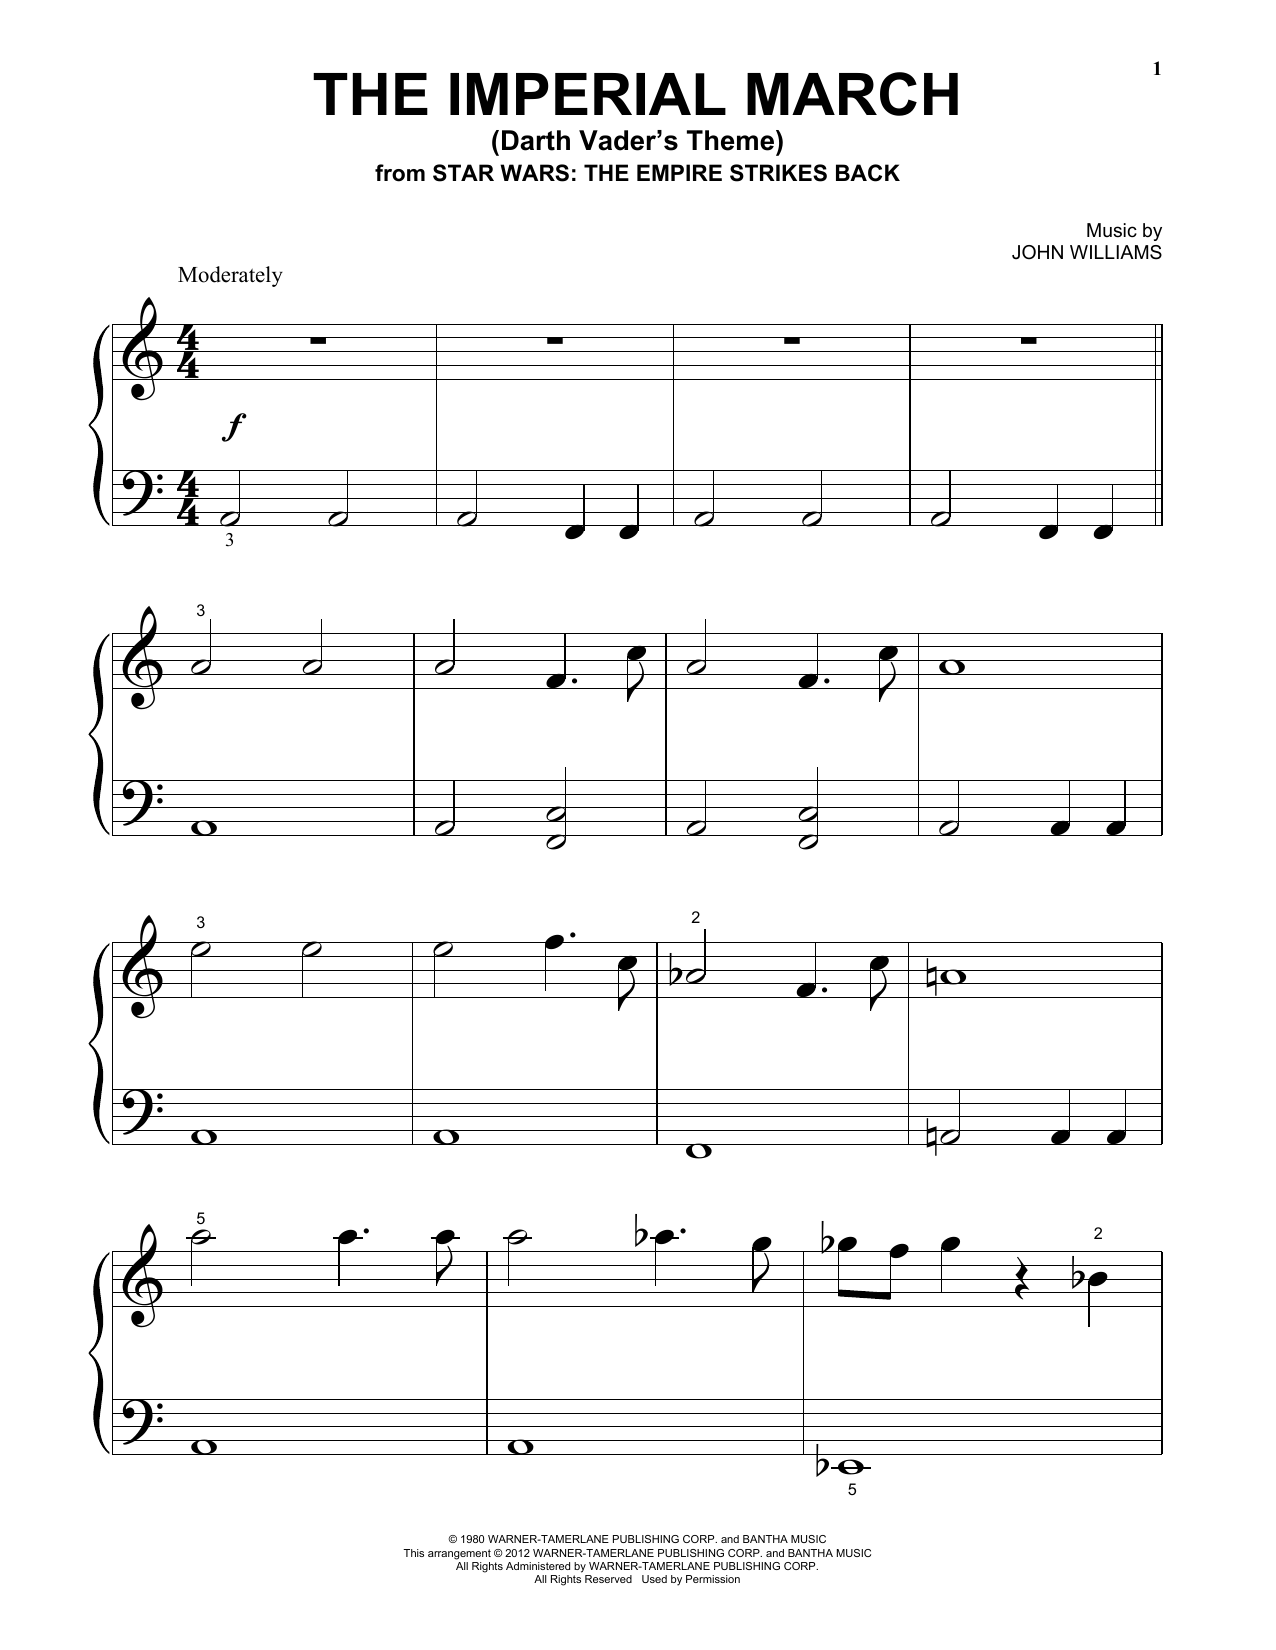 Download John Williams 'The Imperial March (Darth Vader's Theme)' Digital Sheet Music Notes & Chords and start playing in minutes